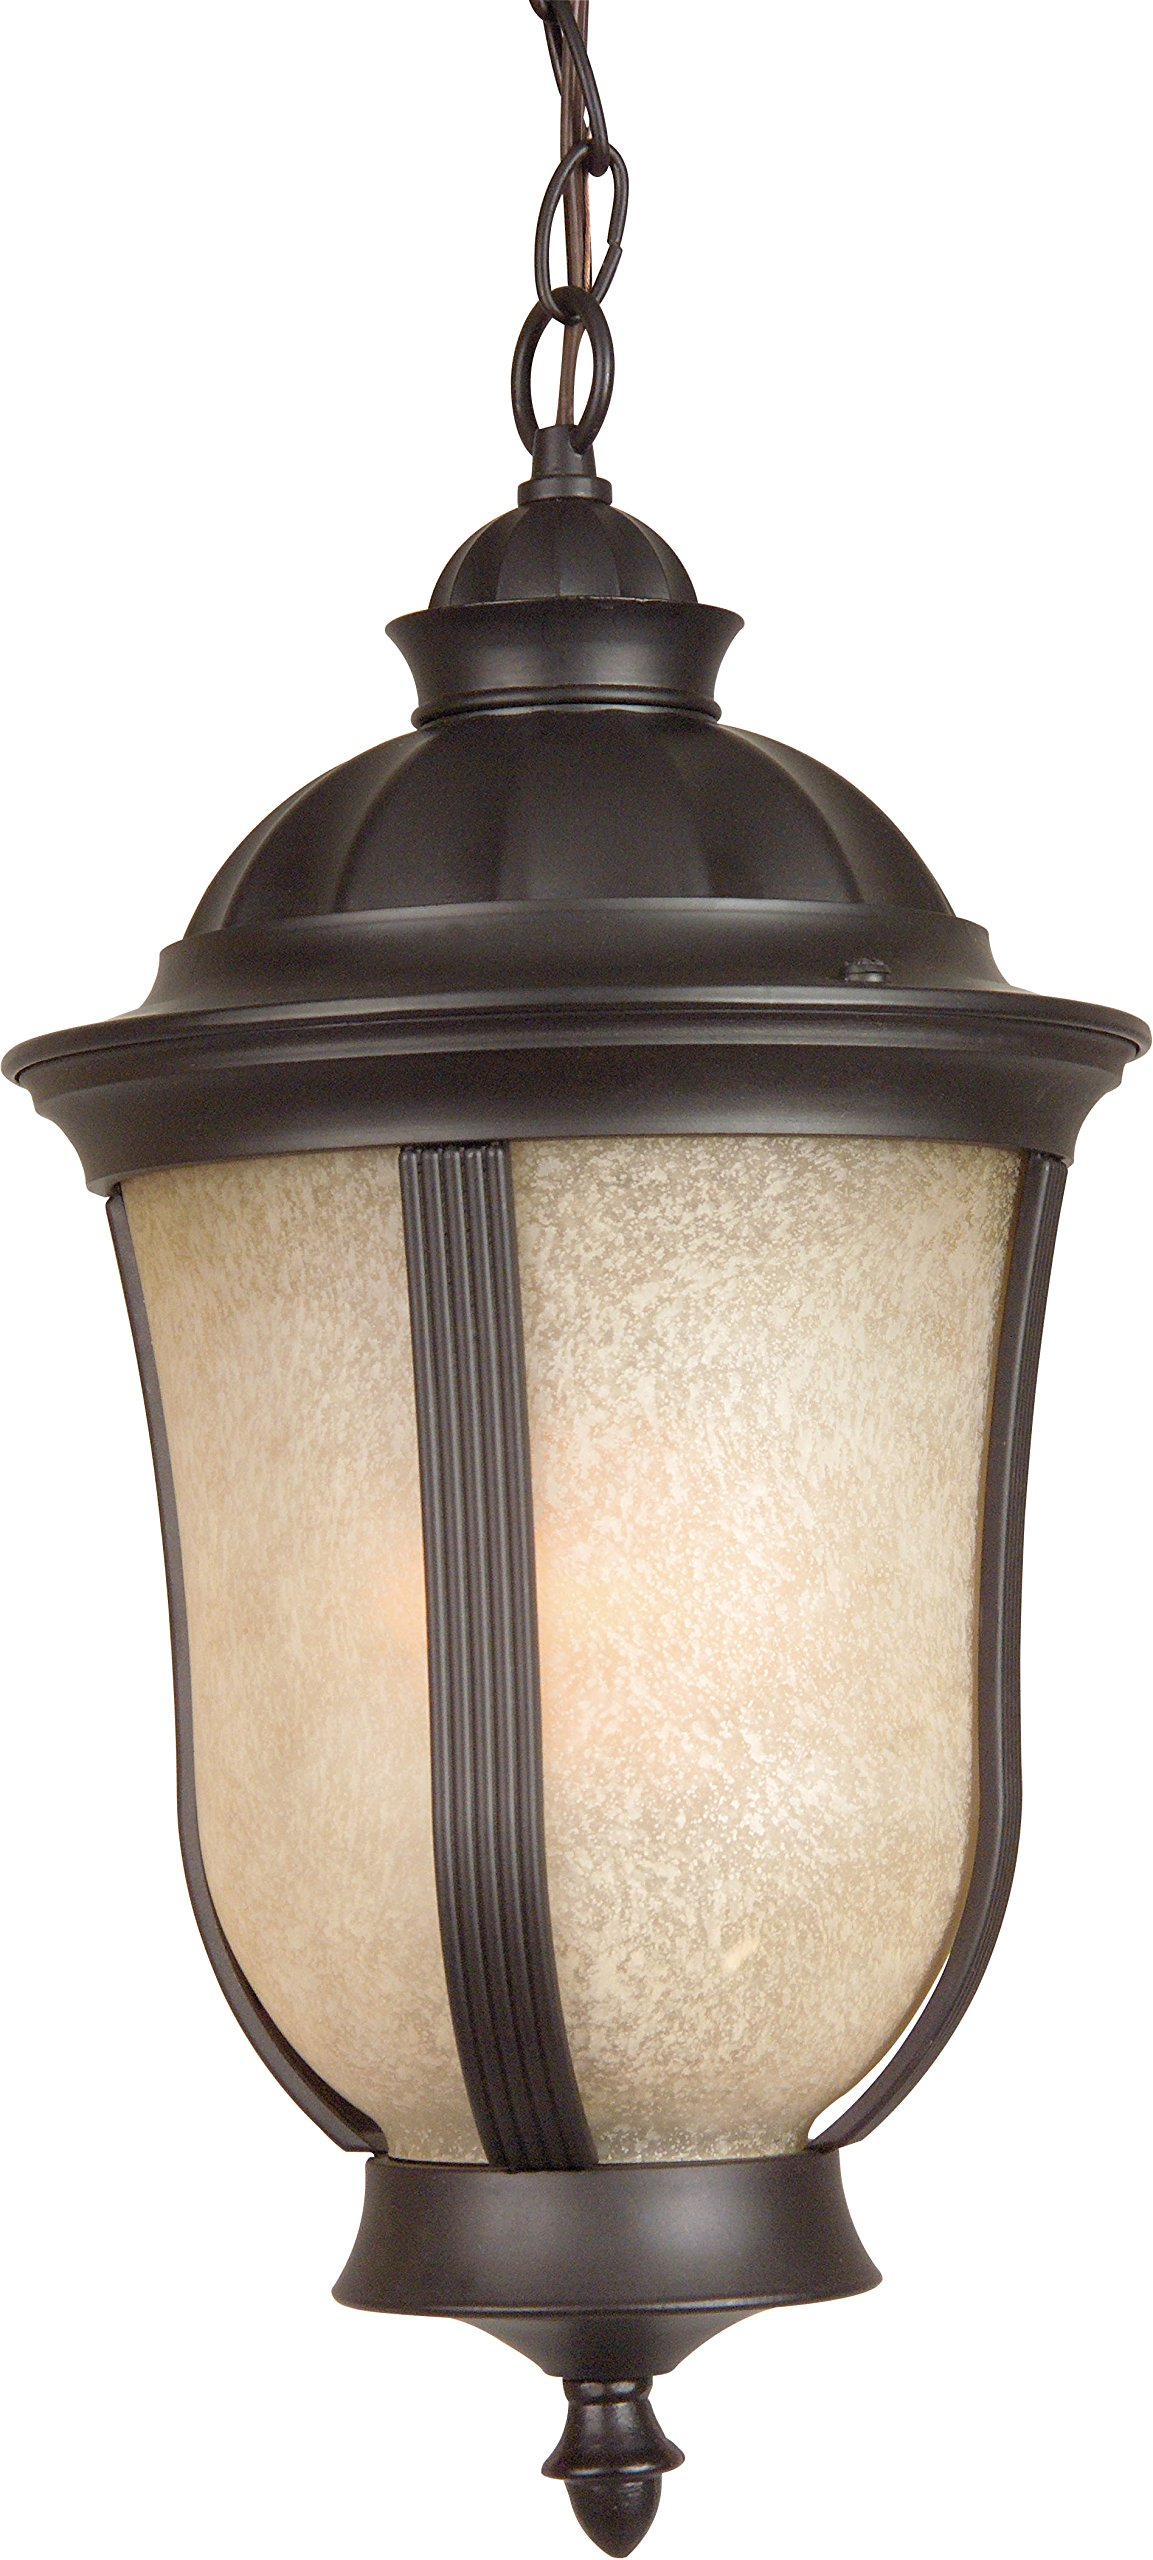 Craftmade Z6111-92 Hanging Lantern with Antique Scavo Glass Shades, Bronze Finish by Craftmade